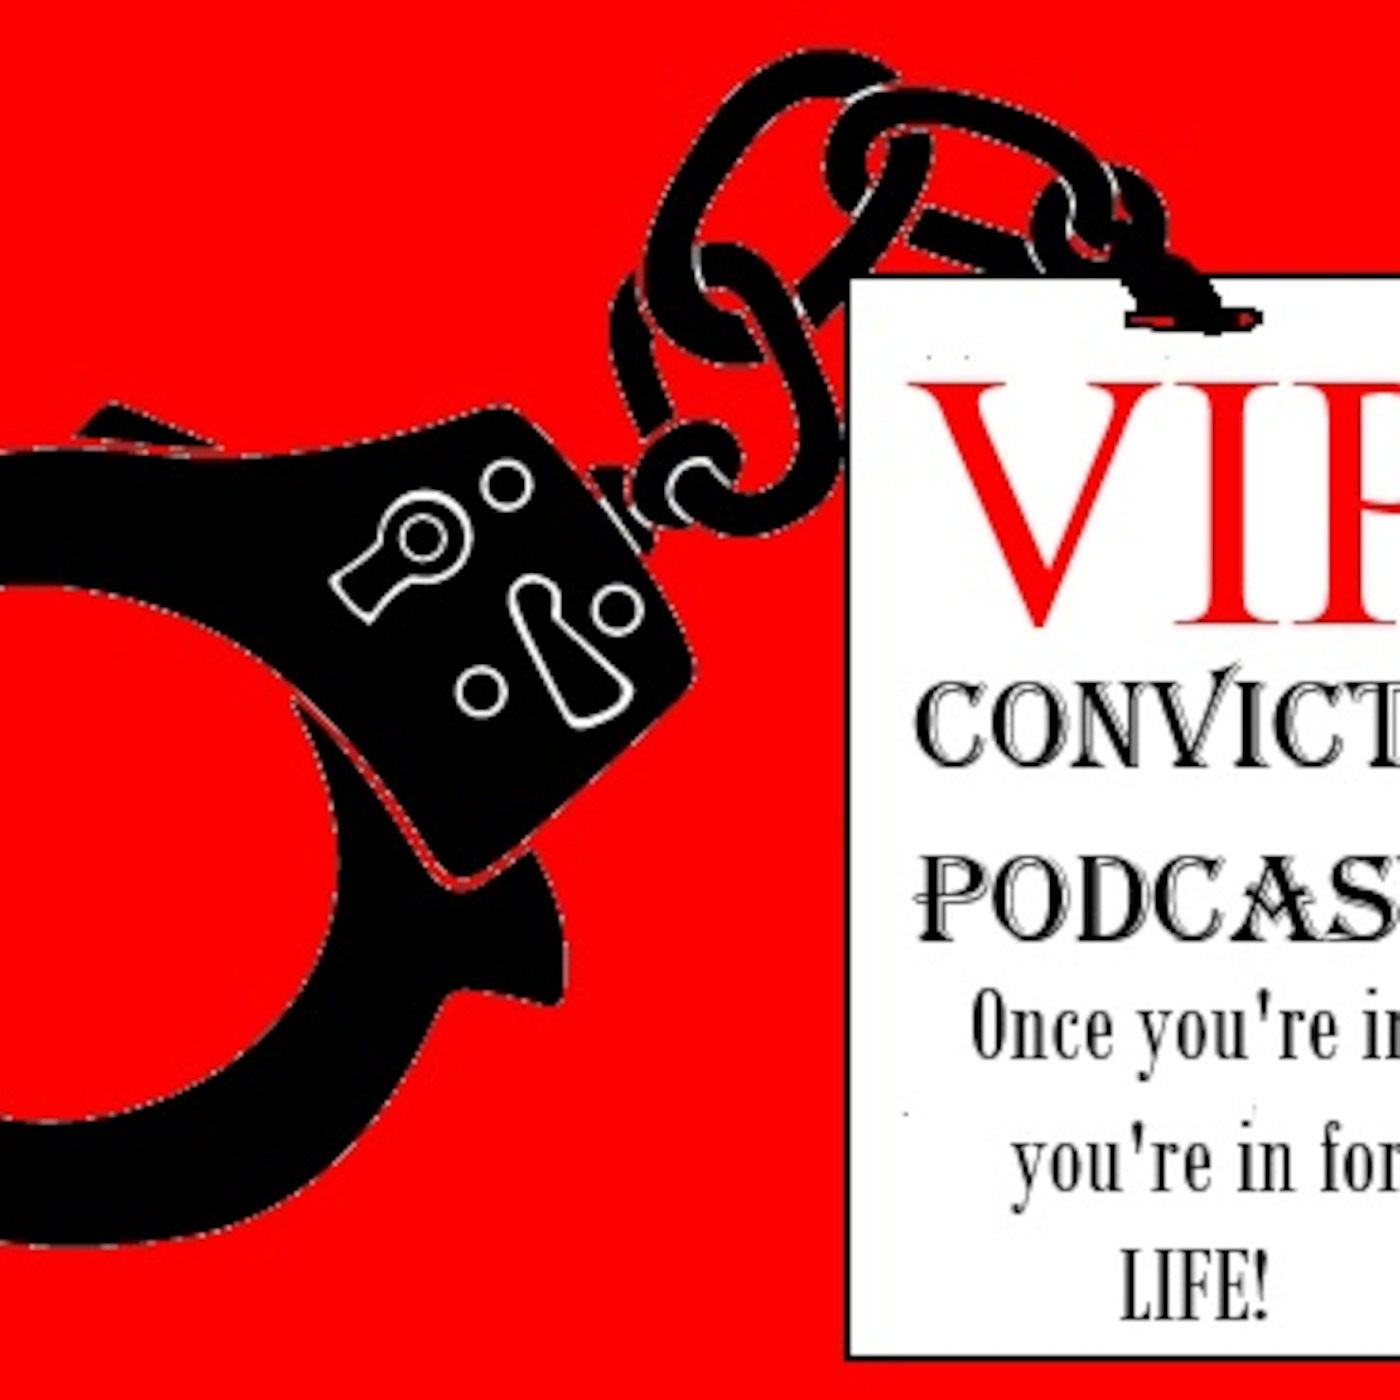 Convicts Convention Podcast's Podcast